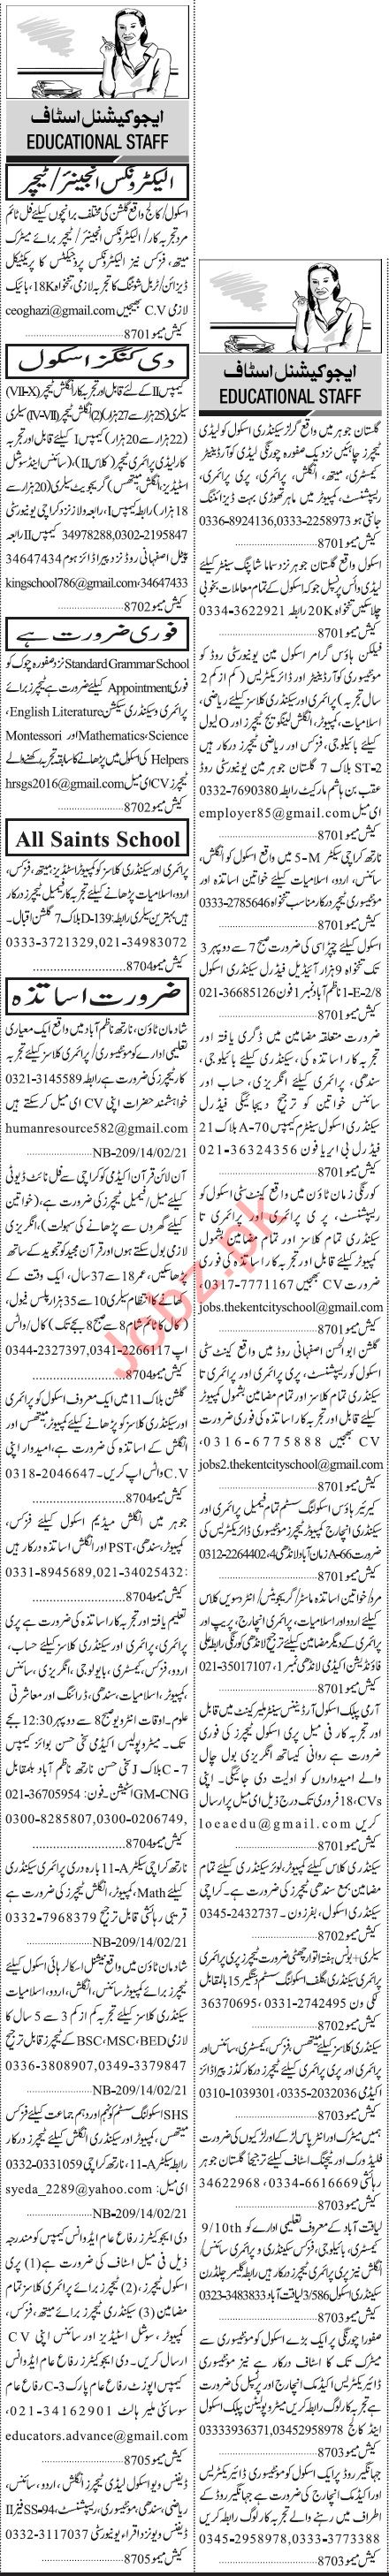 Jang Sunday Classified Ads 14th Feb 2021 for Educational